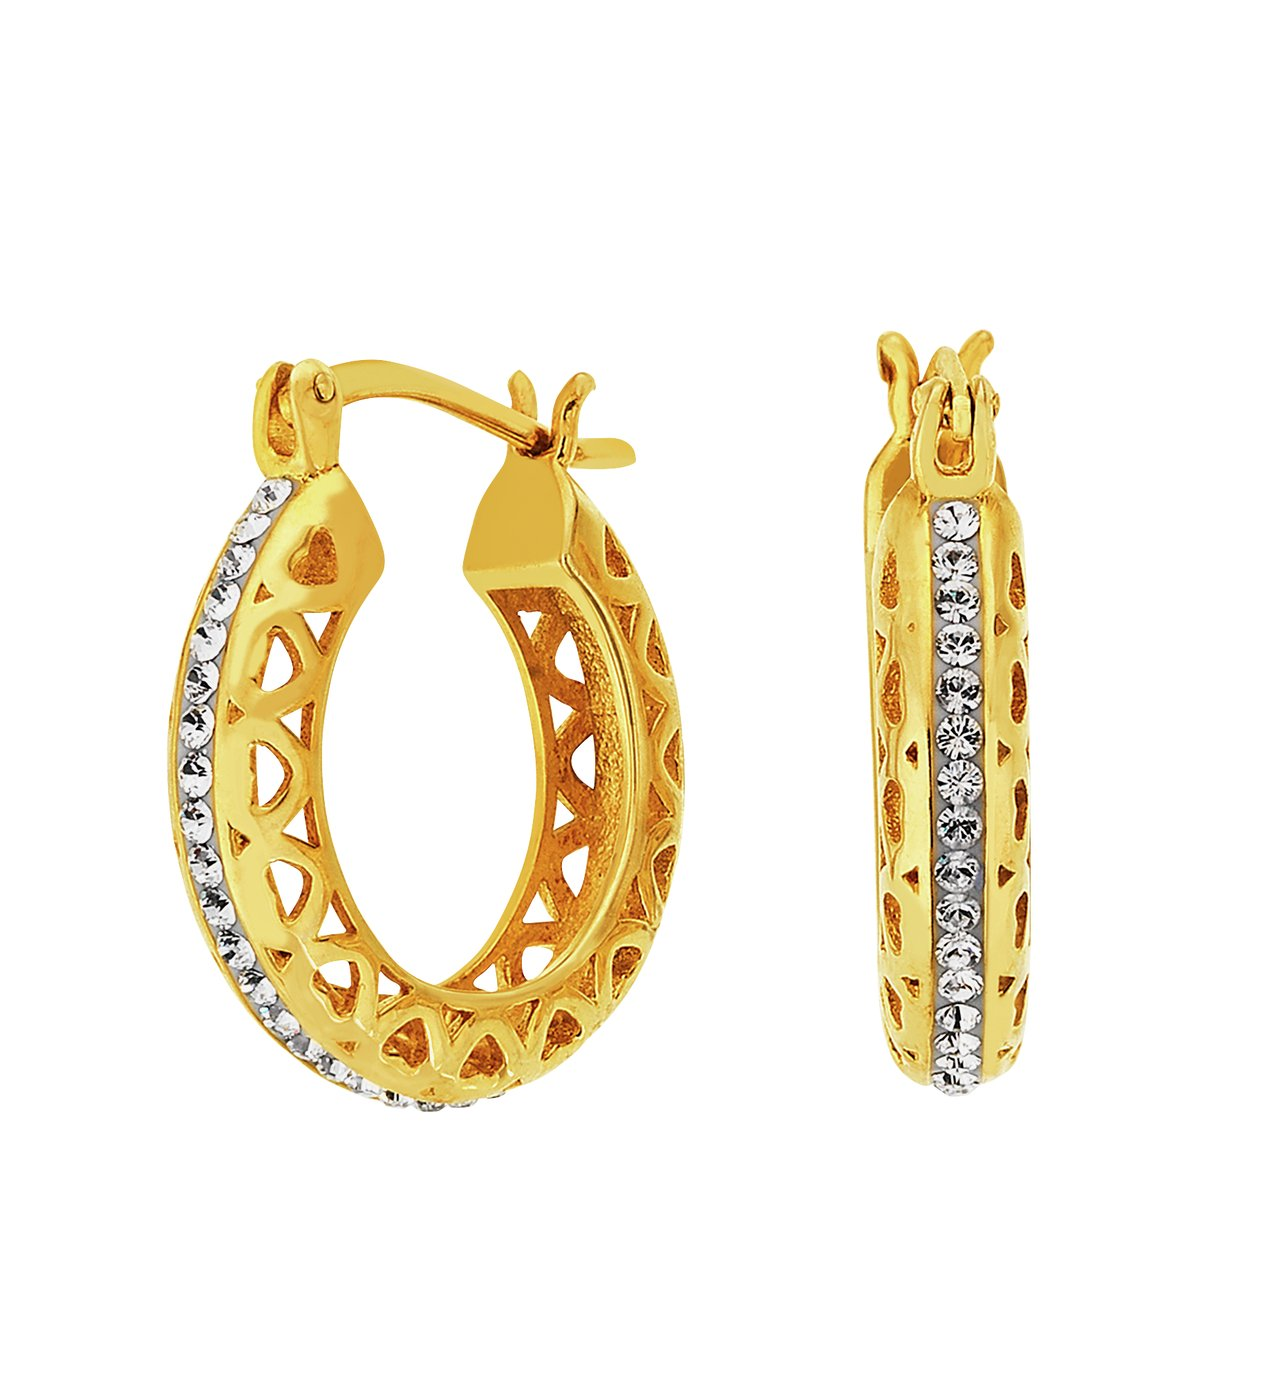 Evoke 9ct Gold Plated Silver Cut Out Edge Crystal Creoles